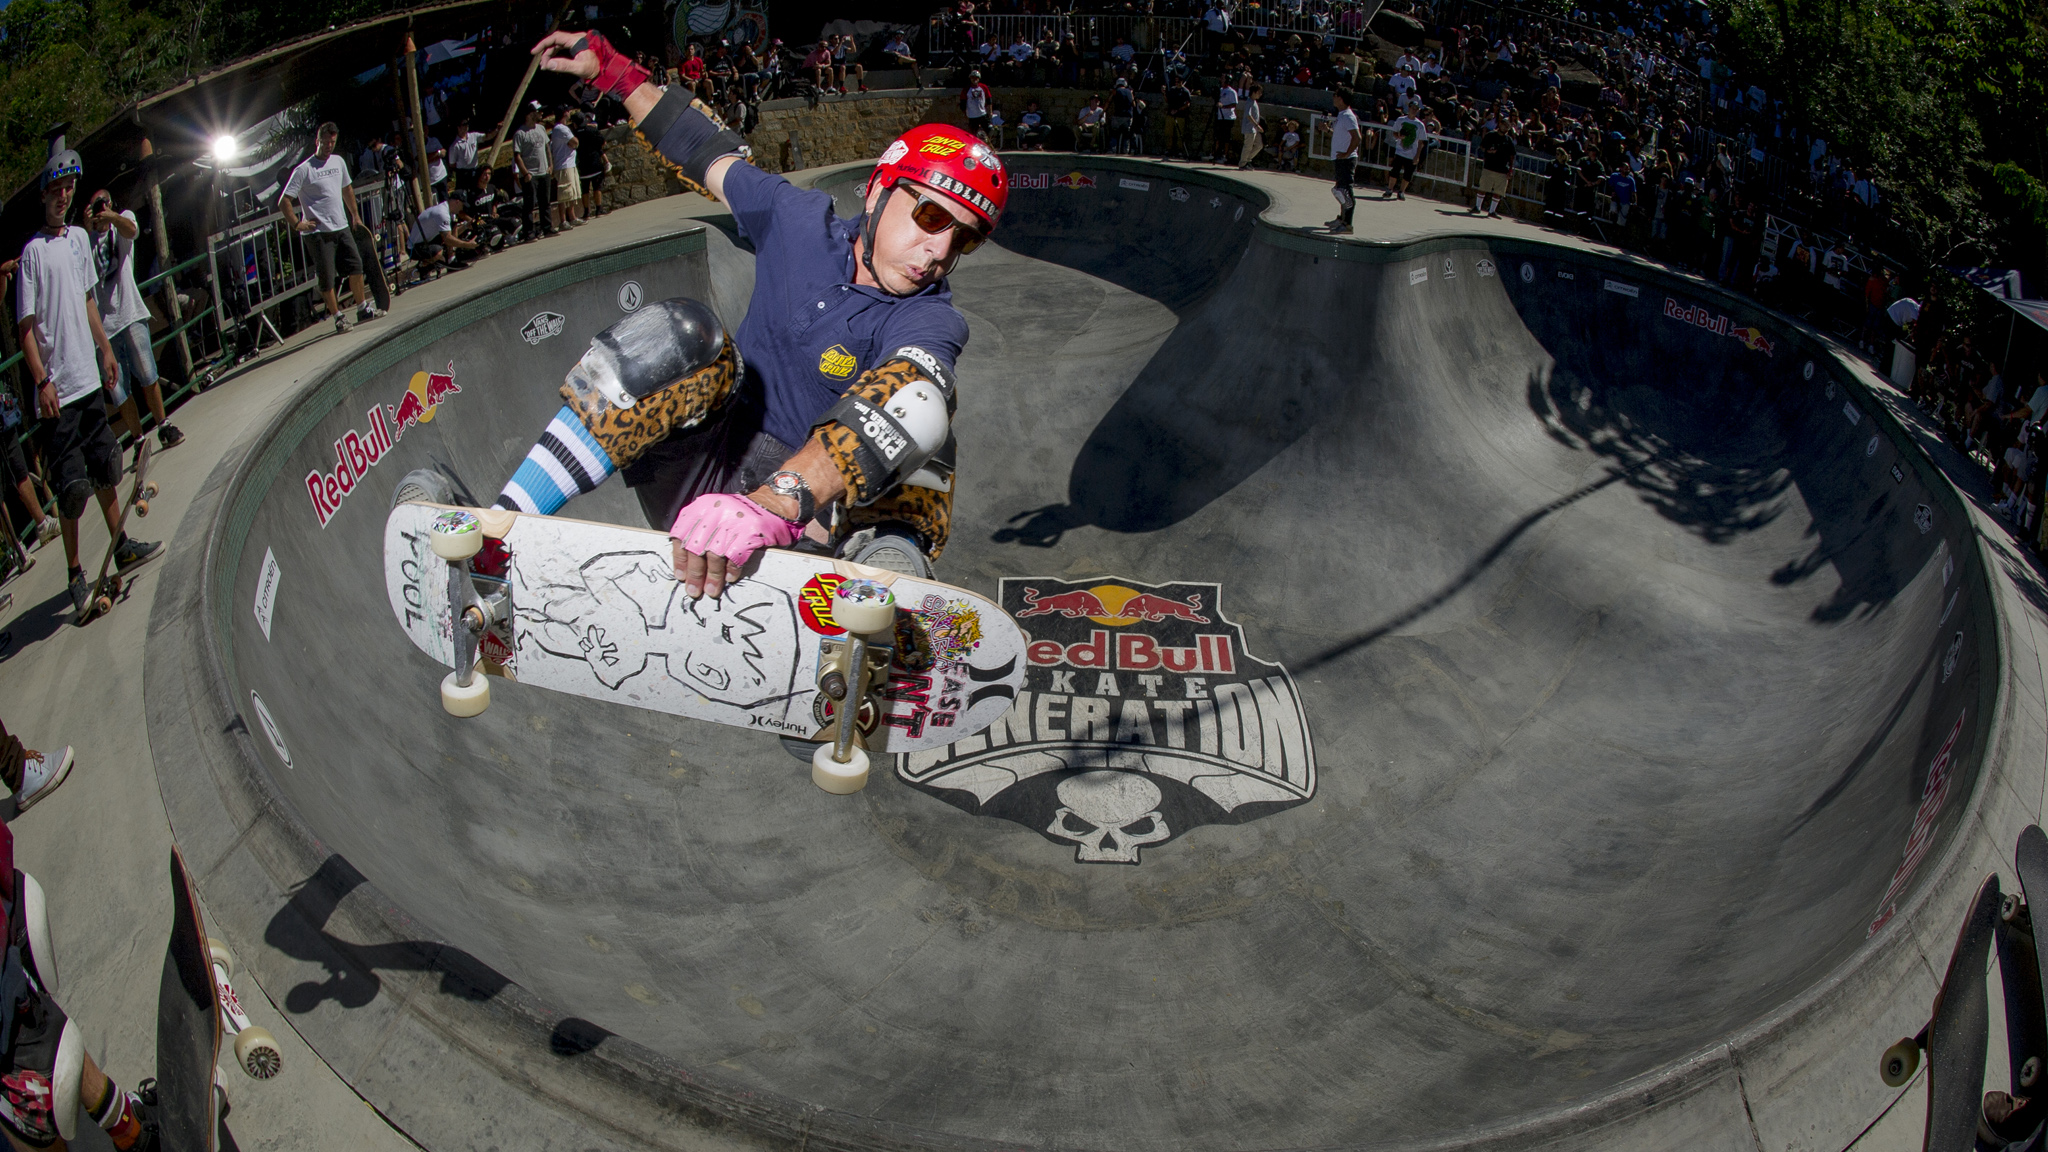 Red Bull Skateboarding Wallpaper Red Bull Content Pool